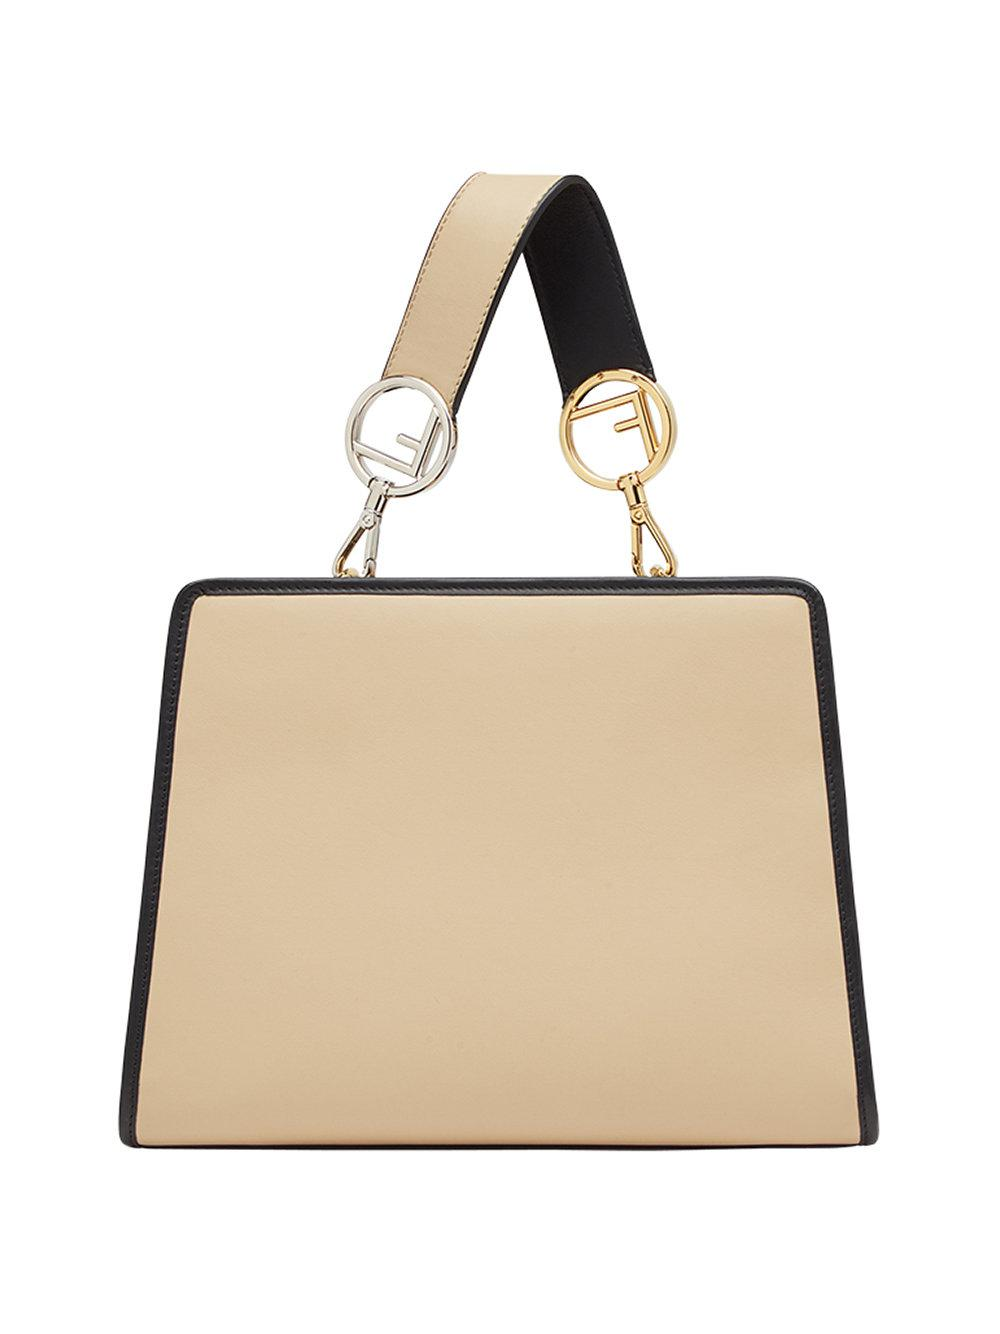 d200aaed052a Fendi Runaway Small Leather Shoulder Bag in Natural - Lyst